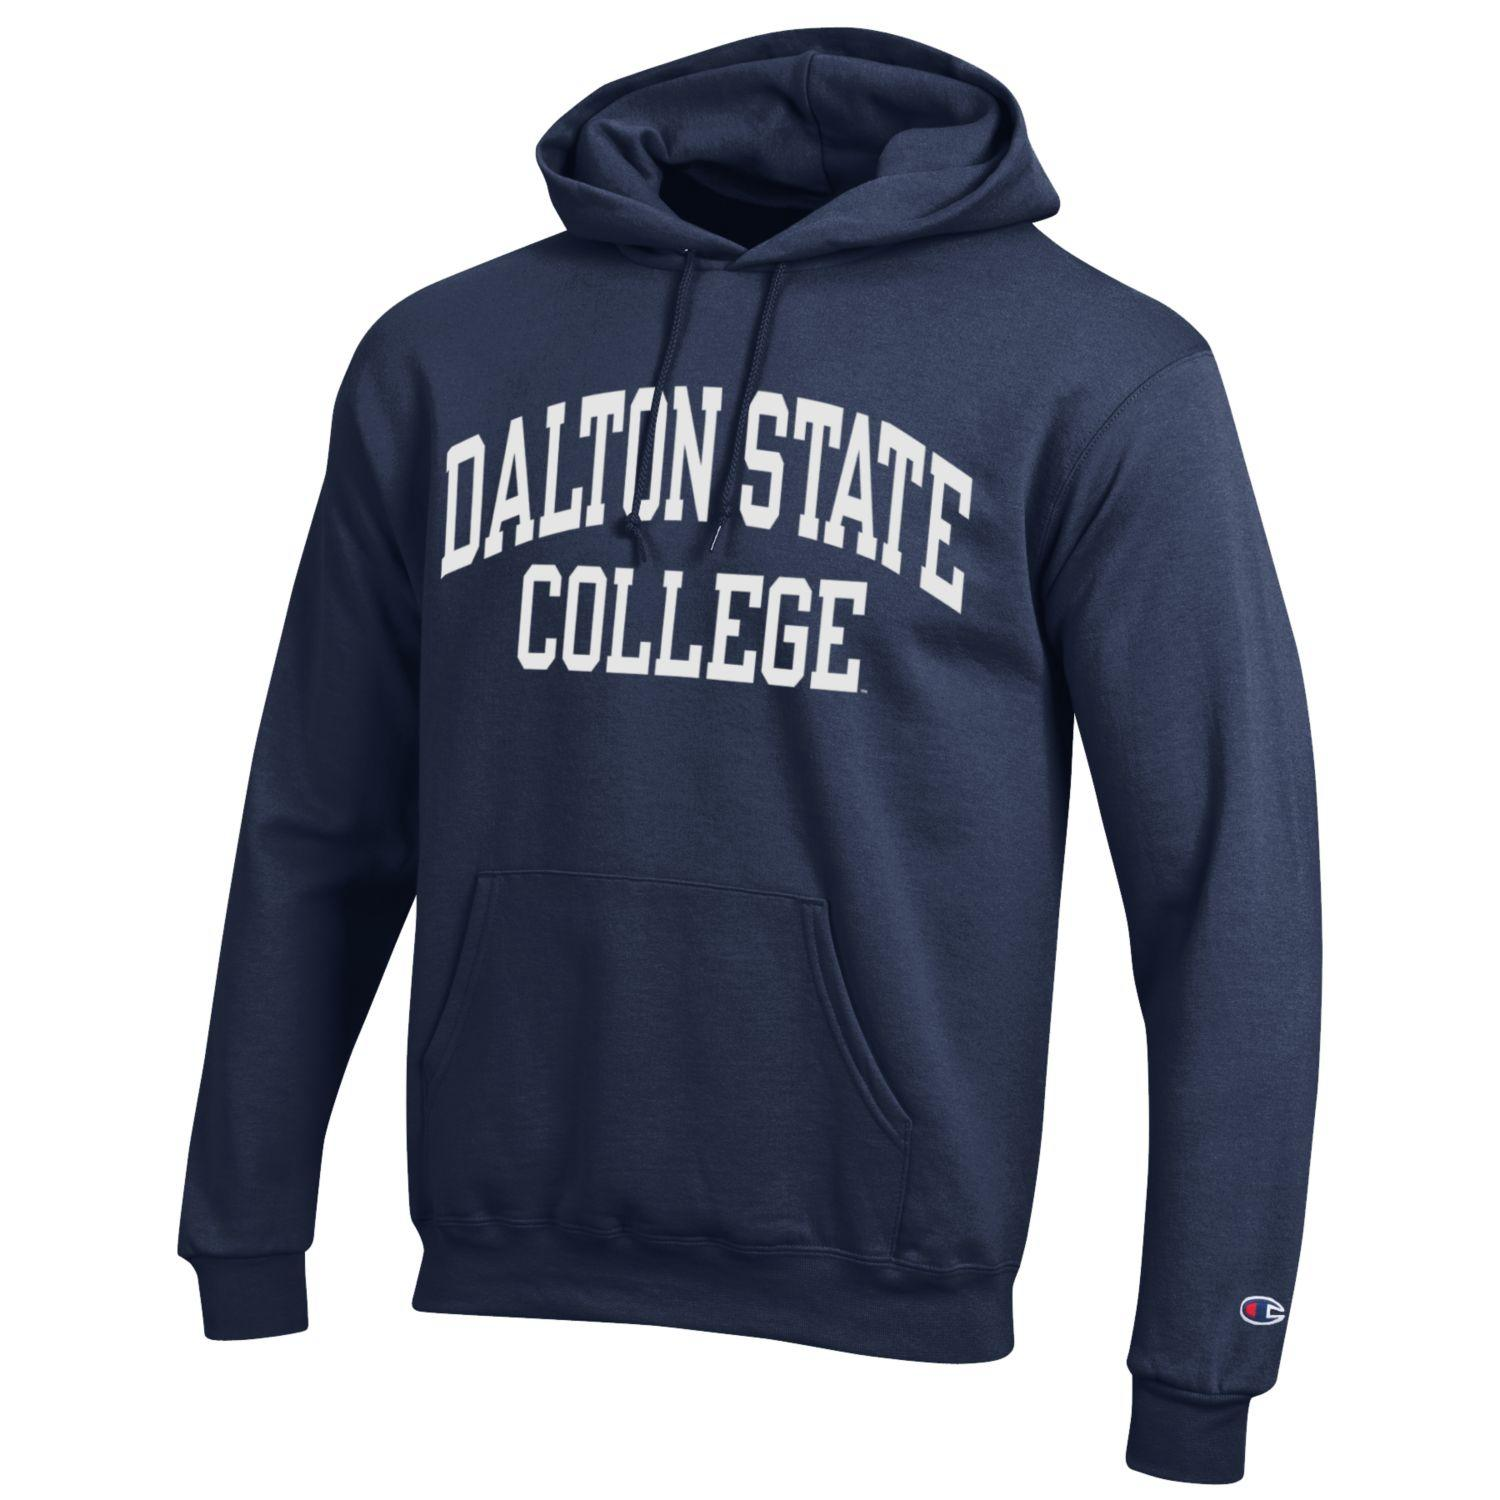 Dalton State College Arch Powerblend Hooded Sweatshirt